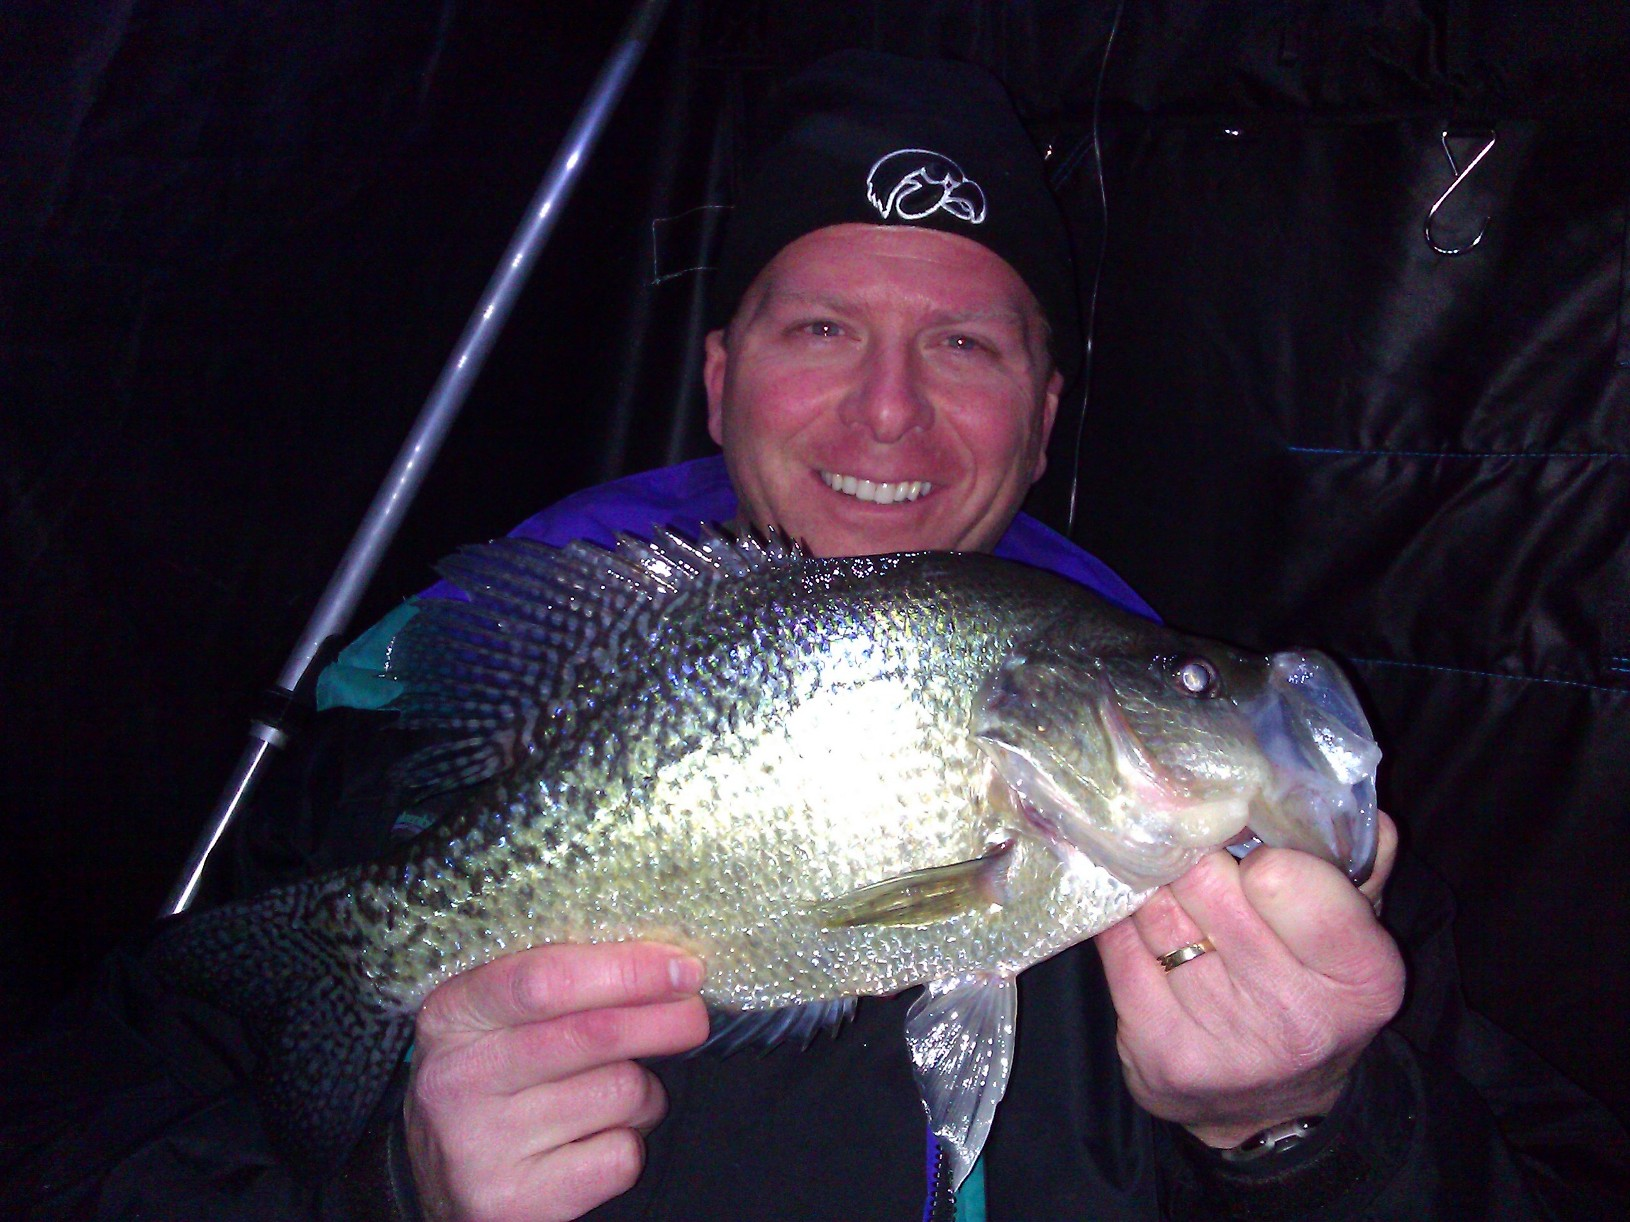 Dave Bruxvoort Urbandale Iowa  This crappie was caught in 20 feet of water off the bottom using